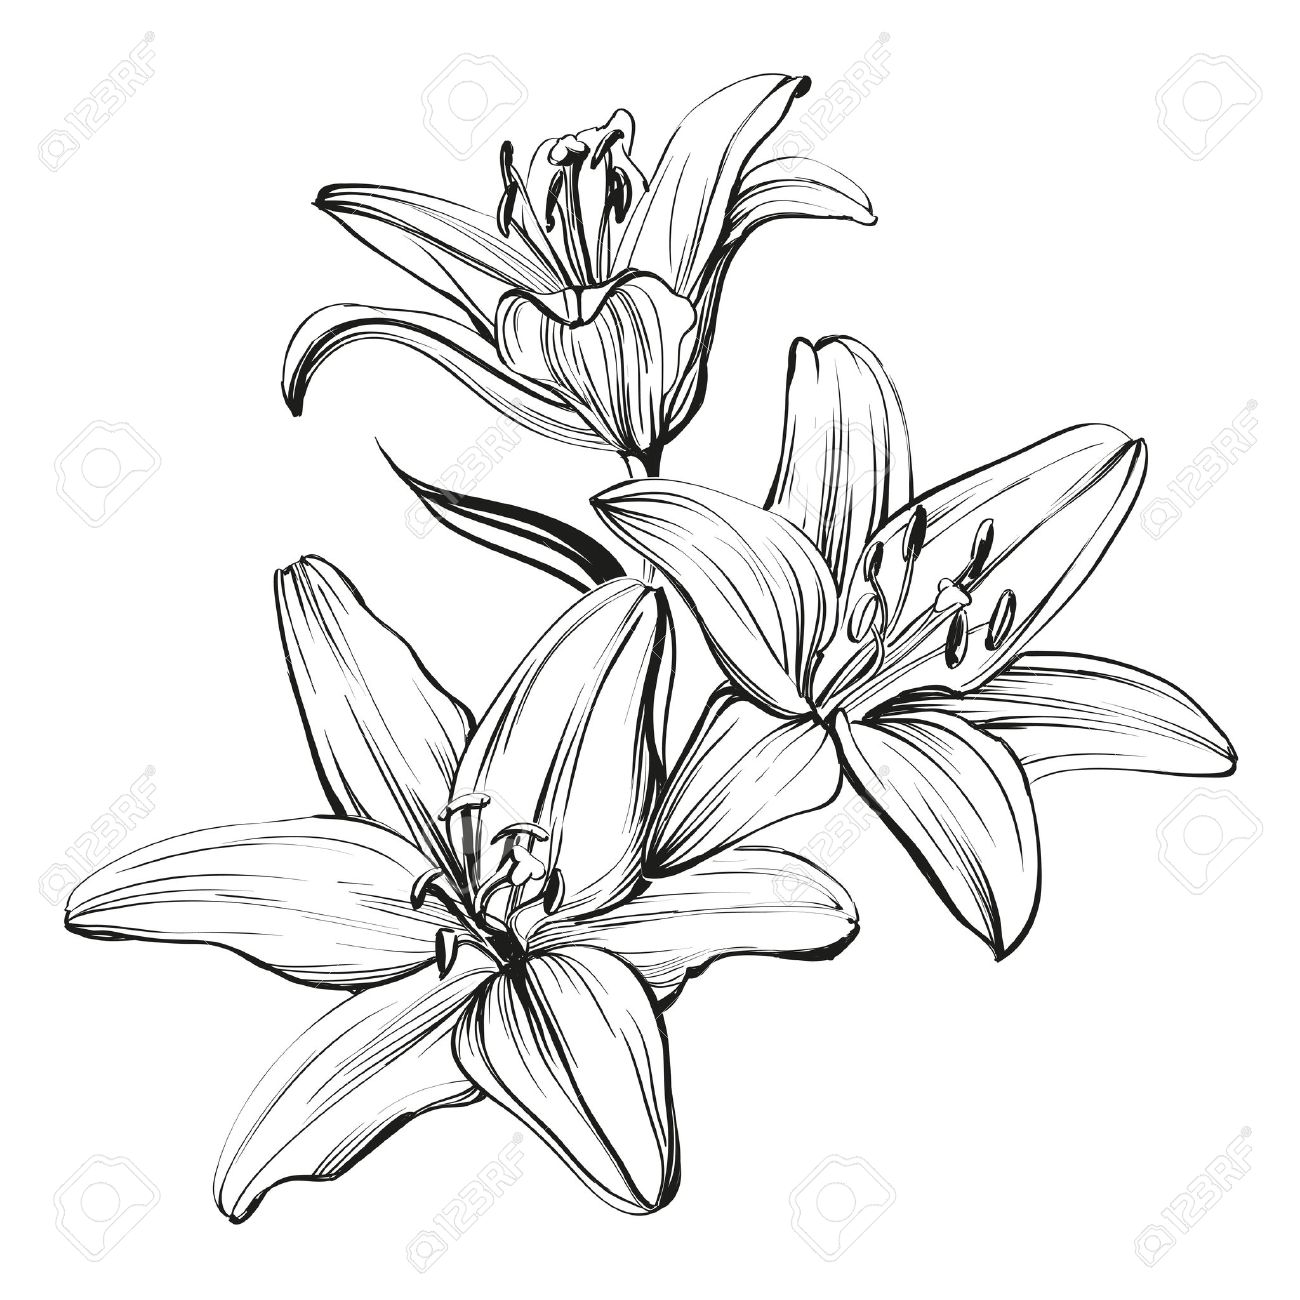 1300x1300 Floral Blooming Lilies Hand Drawn Illustration Sketch Royalty Free